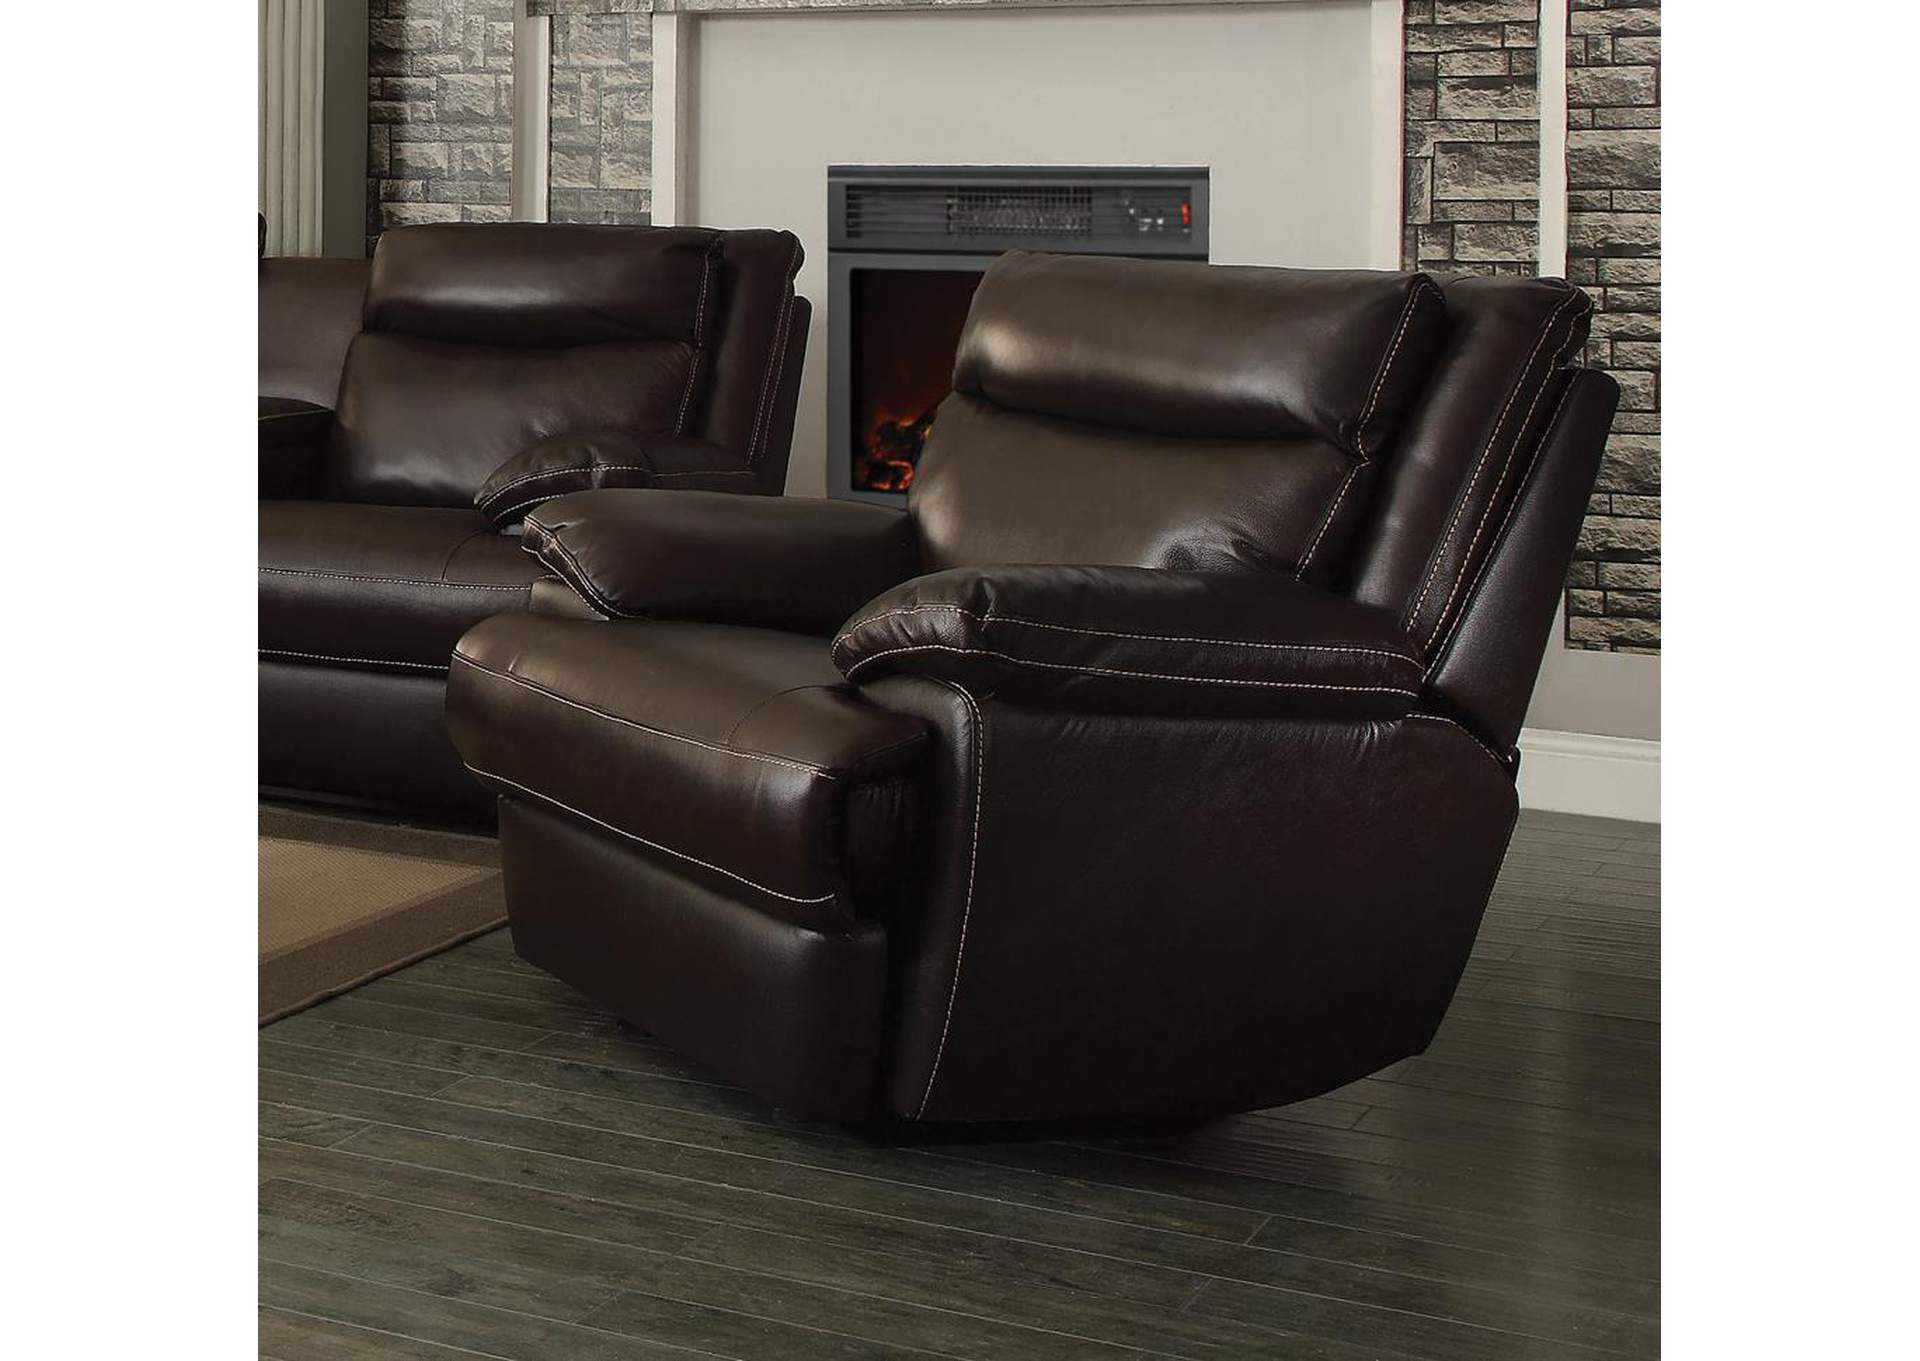 Brown Reclining Sofa,ABF Coaster Furniture